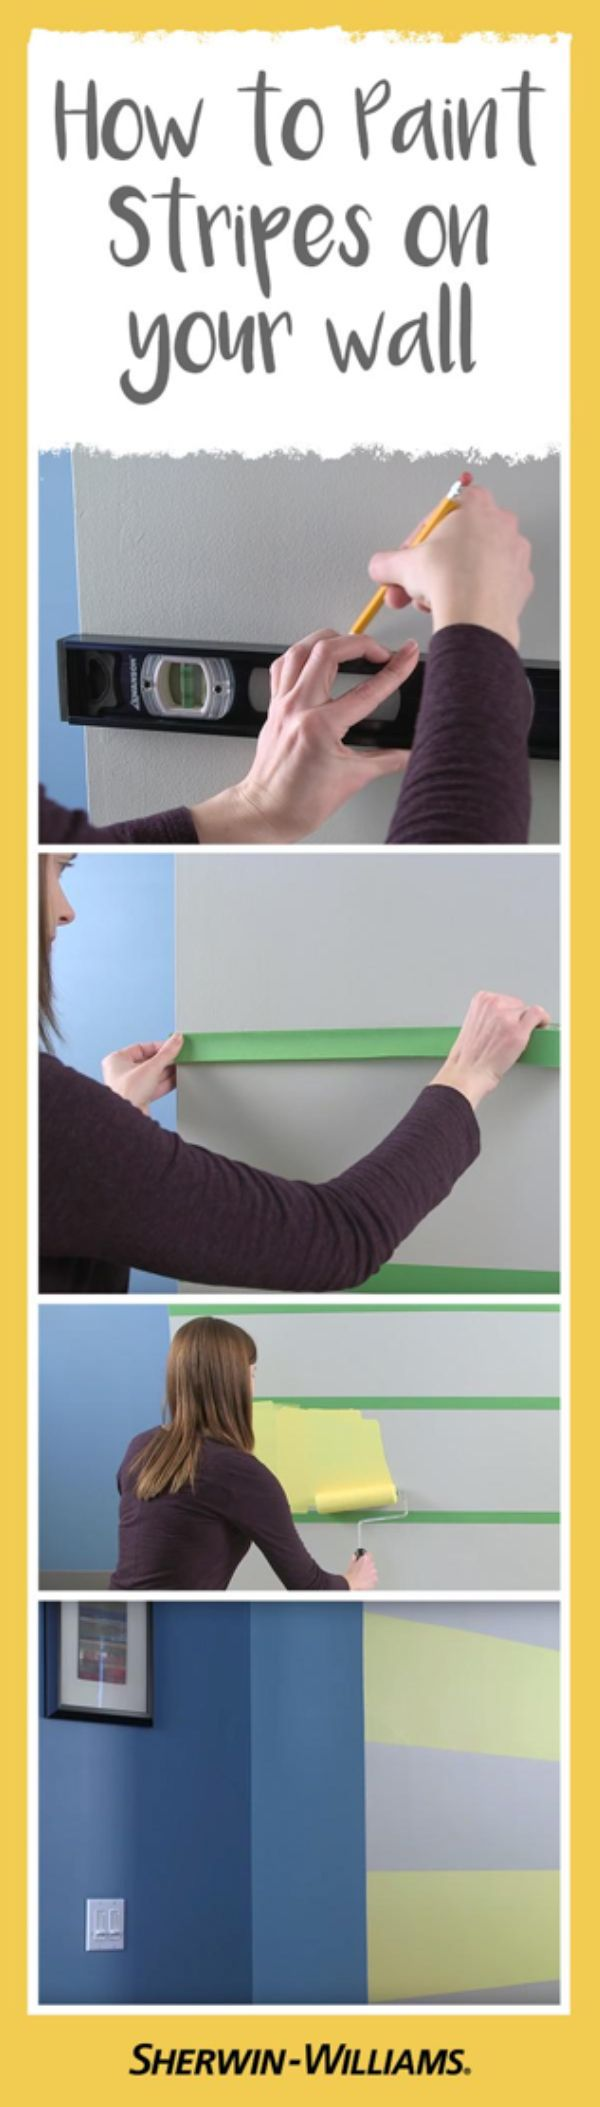 Wall paint ideas stripes - Painting Stripes On Your Wall Has Never Been Easier Just Measure Tape And Paint